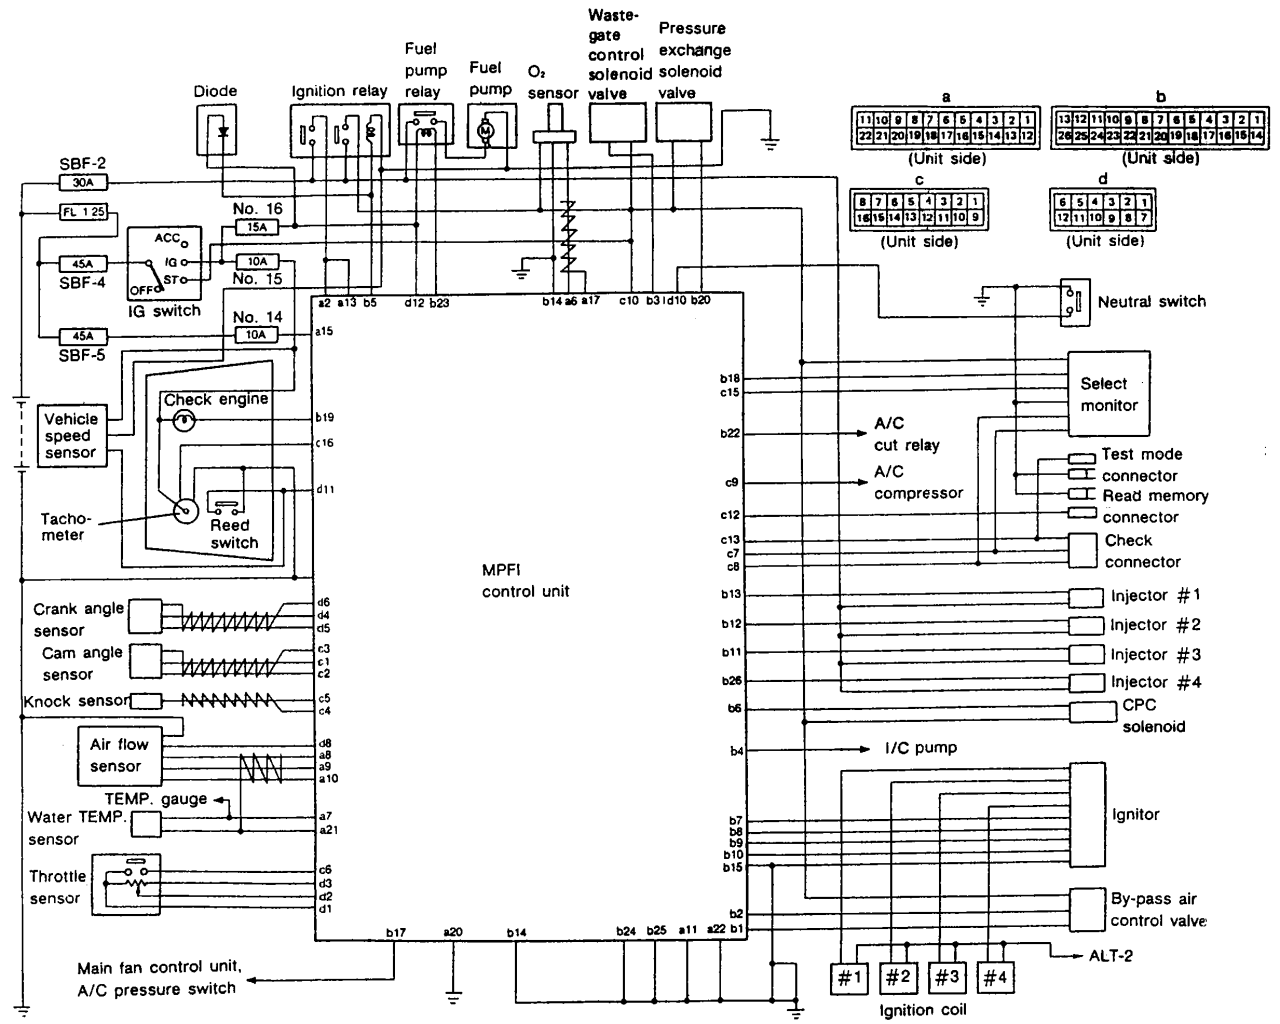 92_liberty_rs_ecu 93 subaru legacy wiring diagram 1995 subaru legacy wiring diagram 2010 Subaru Forester Engine Diagram at virtualis.co